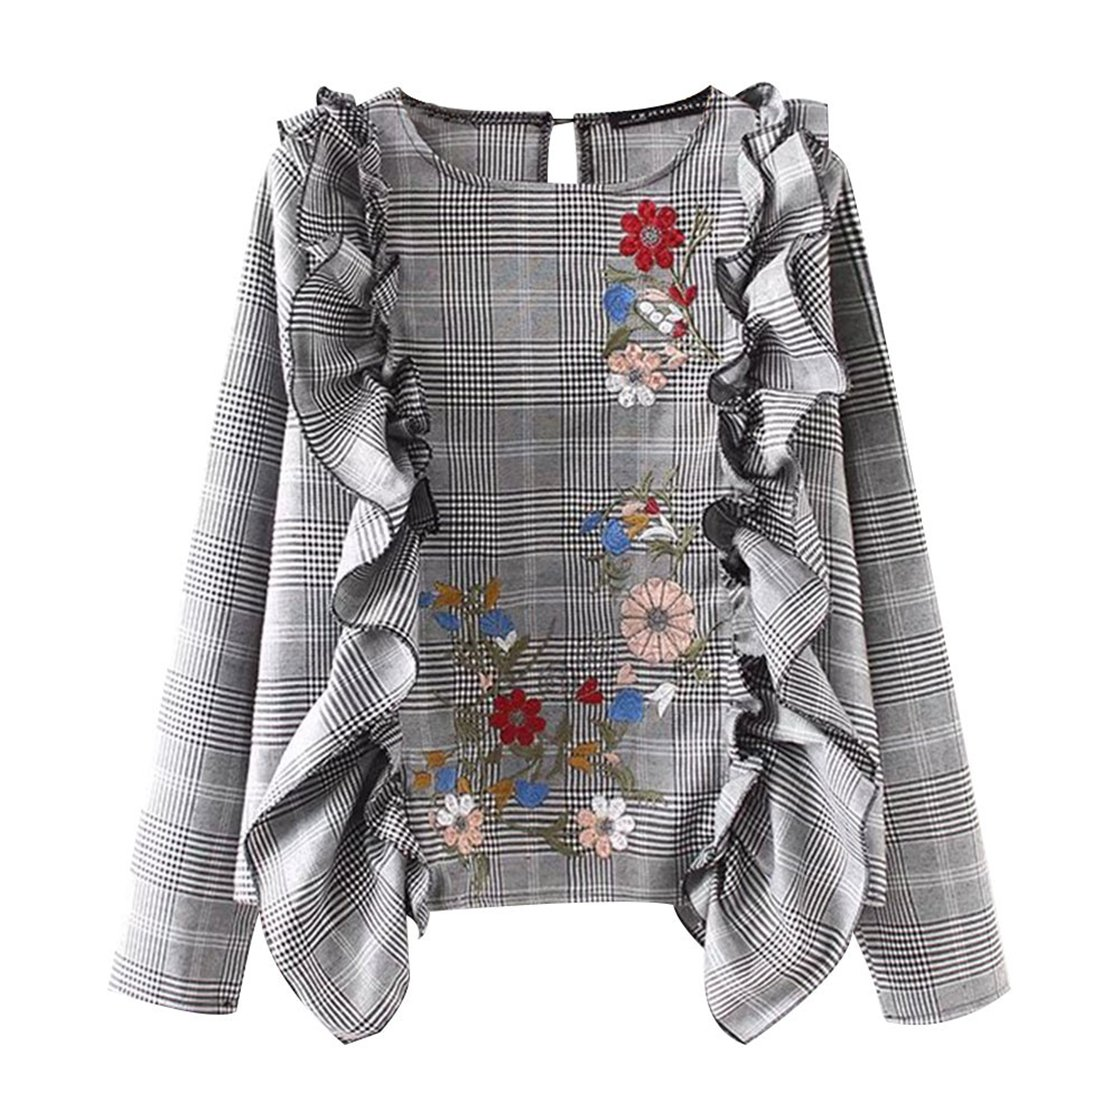 Mose T-Shirts for Women, New Casual Style Women's Ear Check Embroidered Sleeve Shirts Ruffle Blouse Plaid Sweatshirts Daily Fashion Tops New (S, Gray)